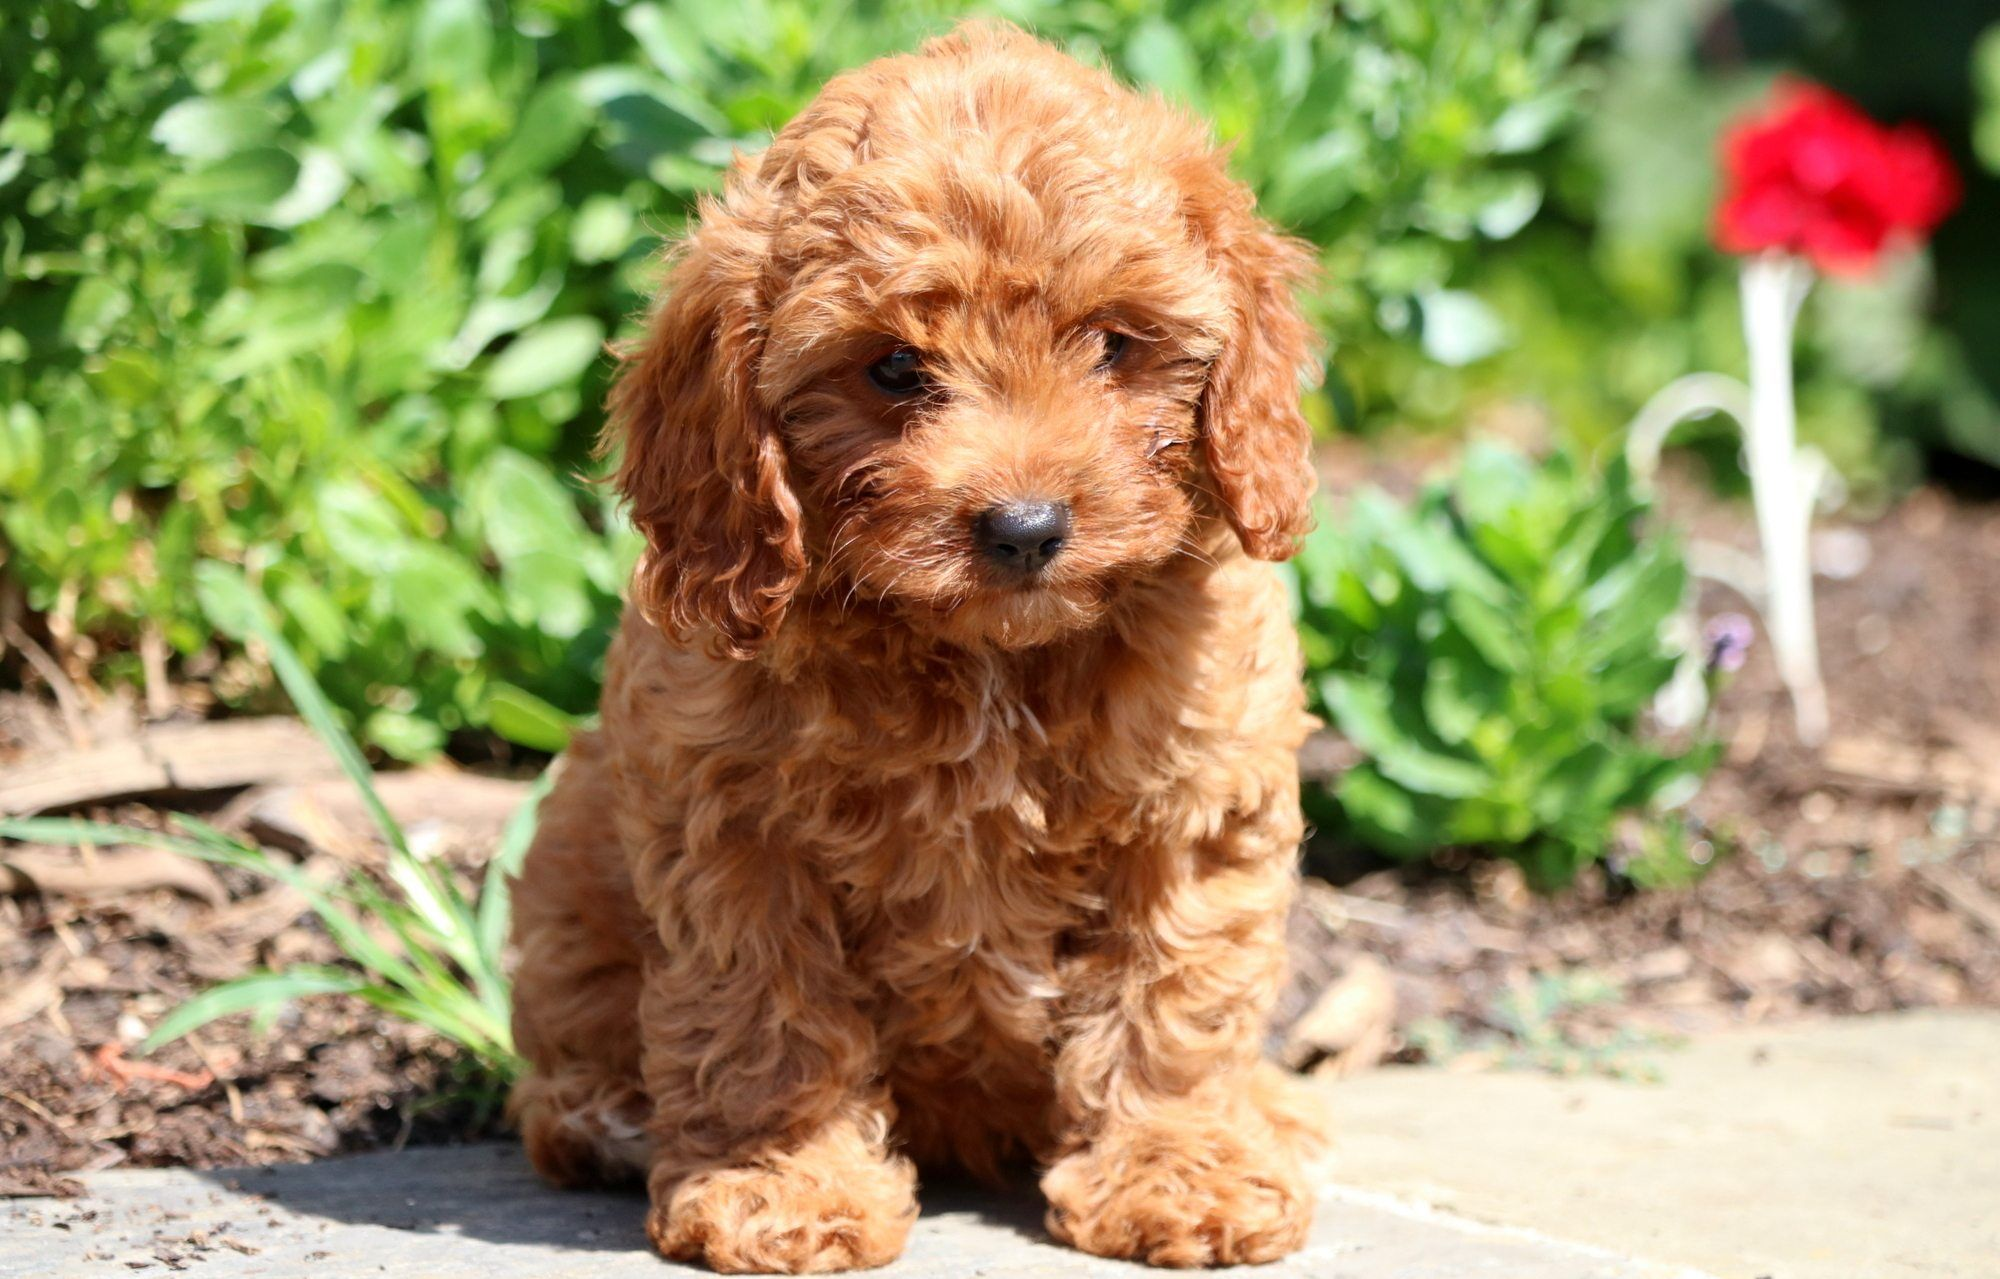 Cavapoo Puppies For Sale Cavapoo puppies, Cavapoo